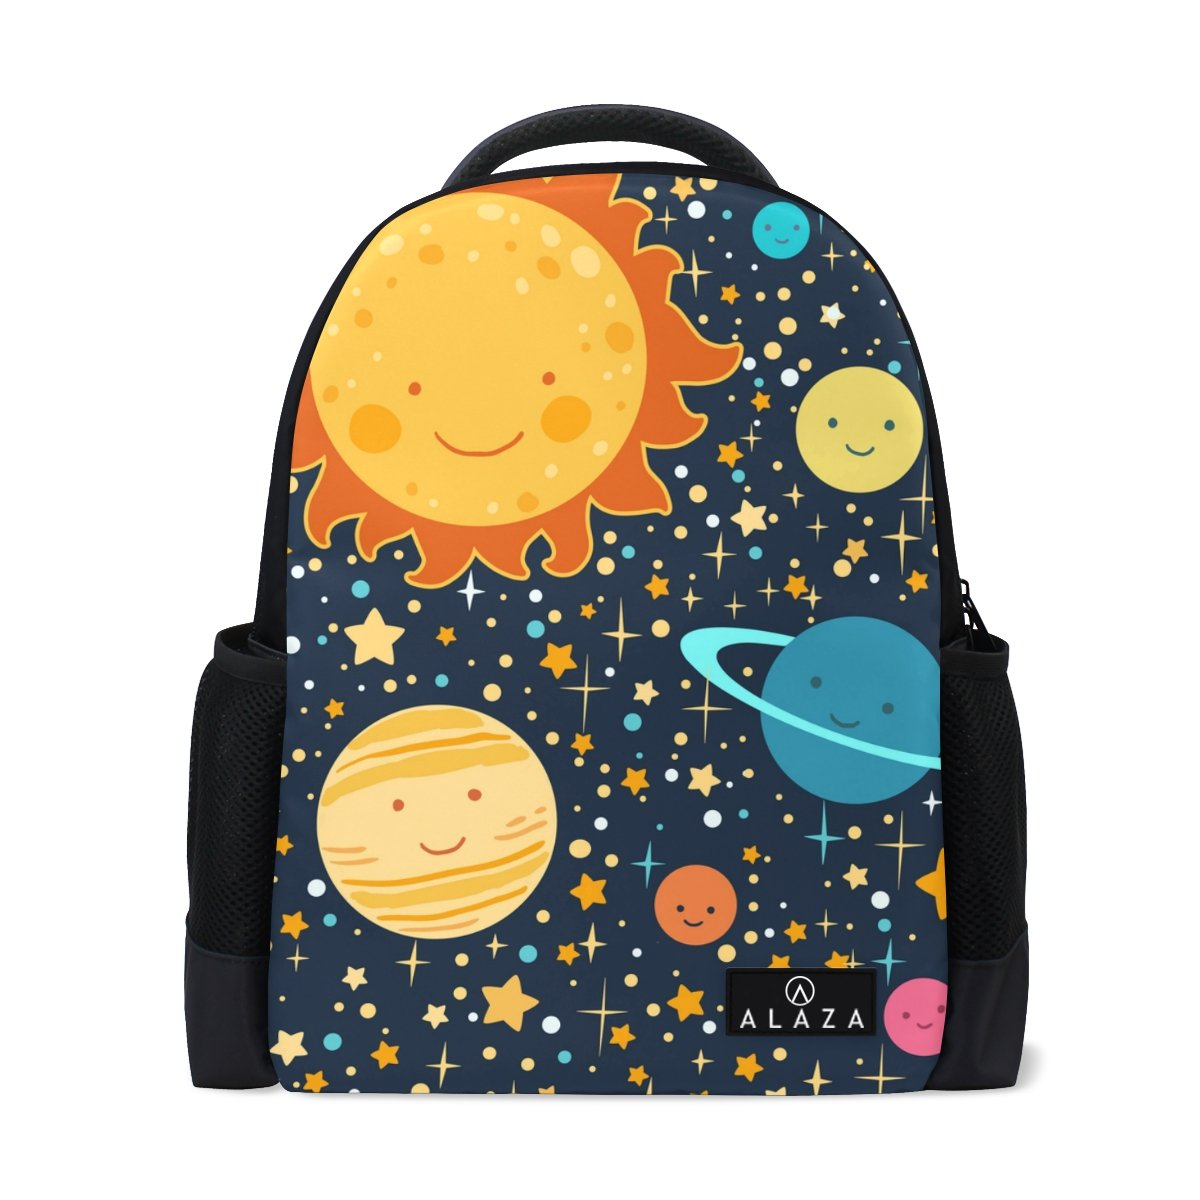 Drawing Solar System Laptop Backpack High School Bookbag Casual Travel Daypack